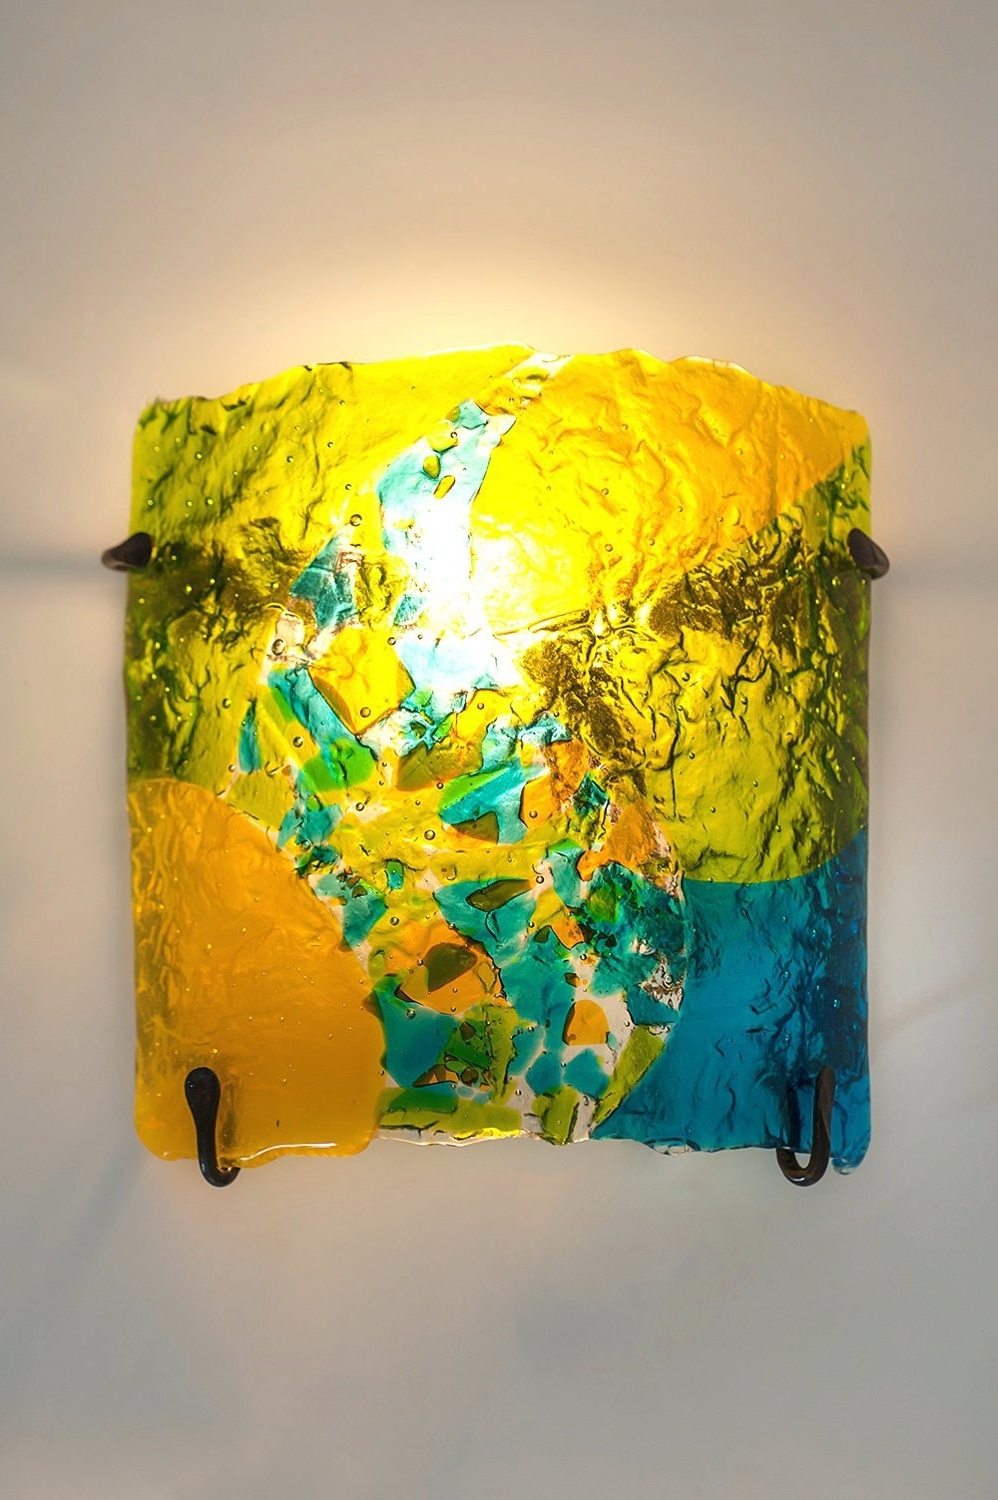 15 Inspirations Of Fused Glass And Metal Wall Art